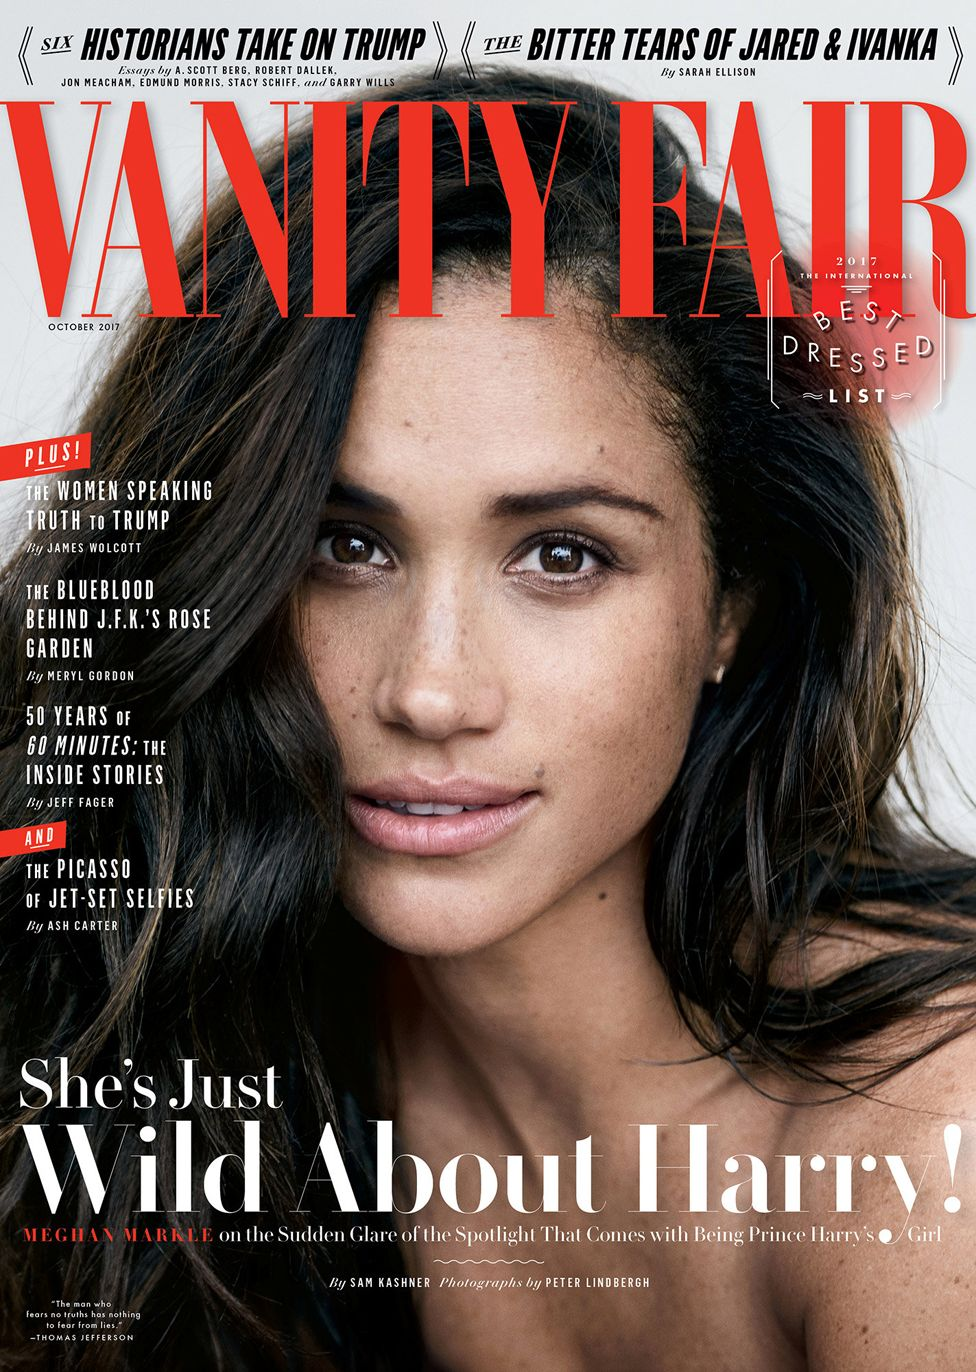 Meghan Markle on the cover of Vanity Fair when she first spoke publicly about her relationship with Prince Harry